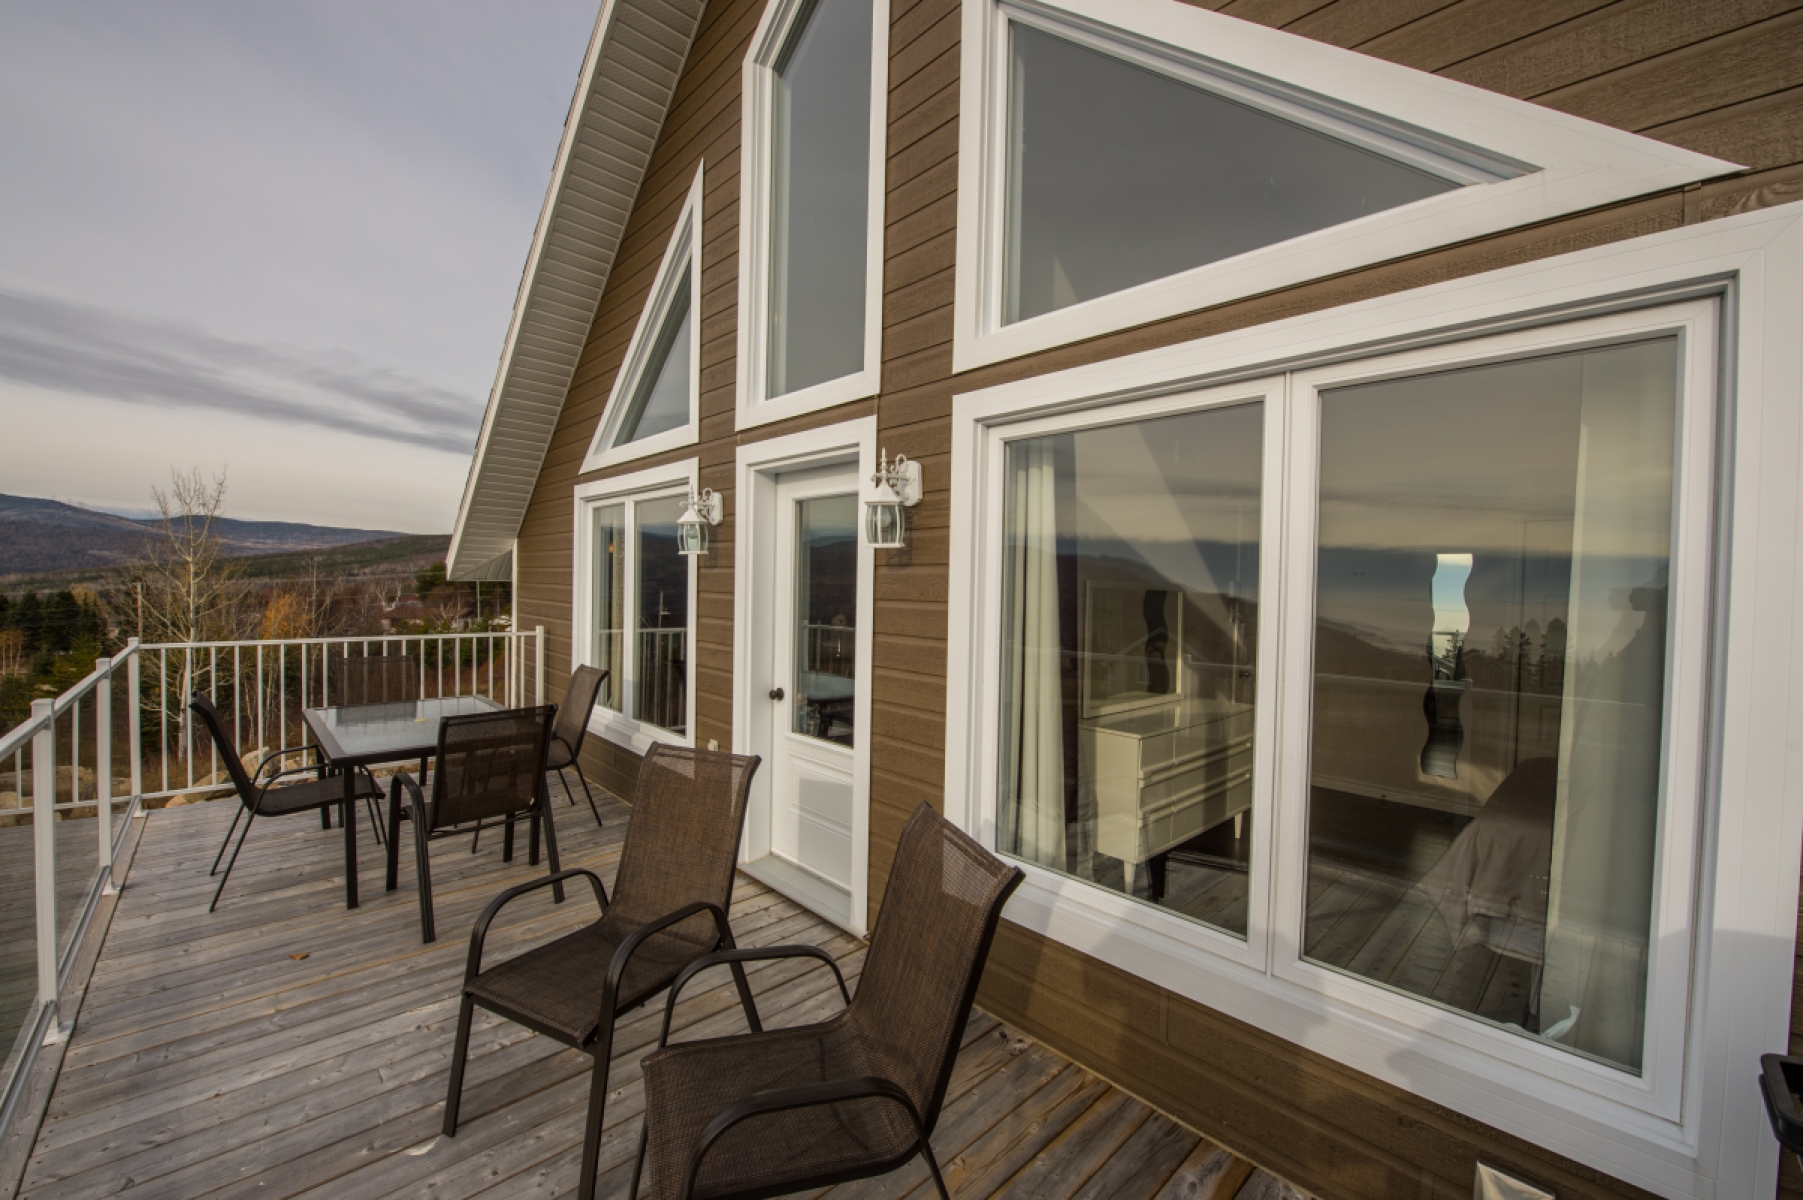 up in rental is rentals of img cottage and for hebergement charlevoix host families absolutely best companies children cottages guarantees an groups with can four h the friends to rooms bergement without ideal people house it